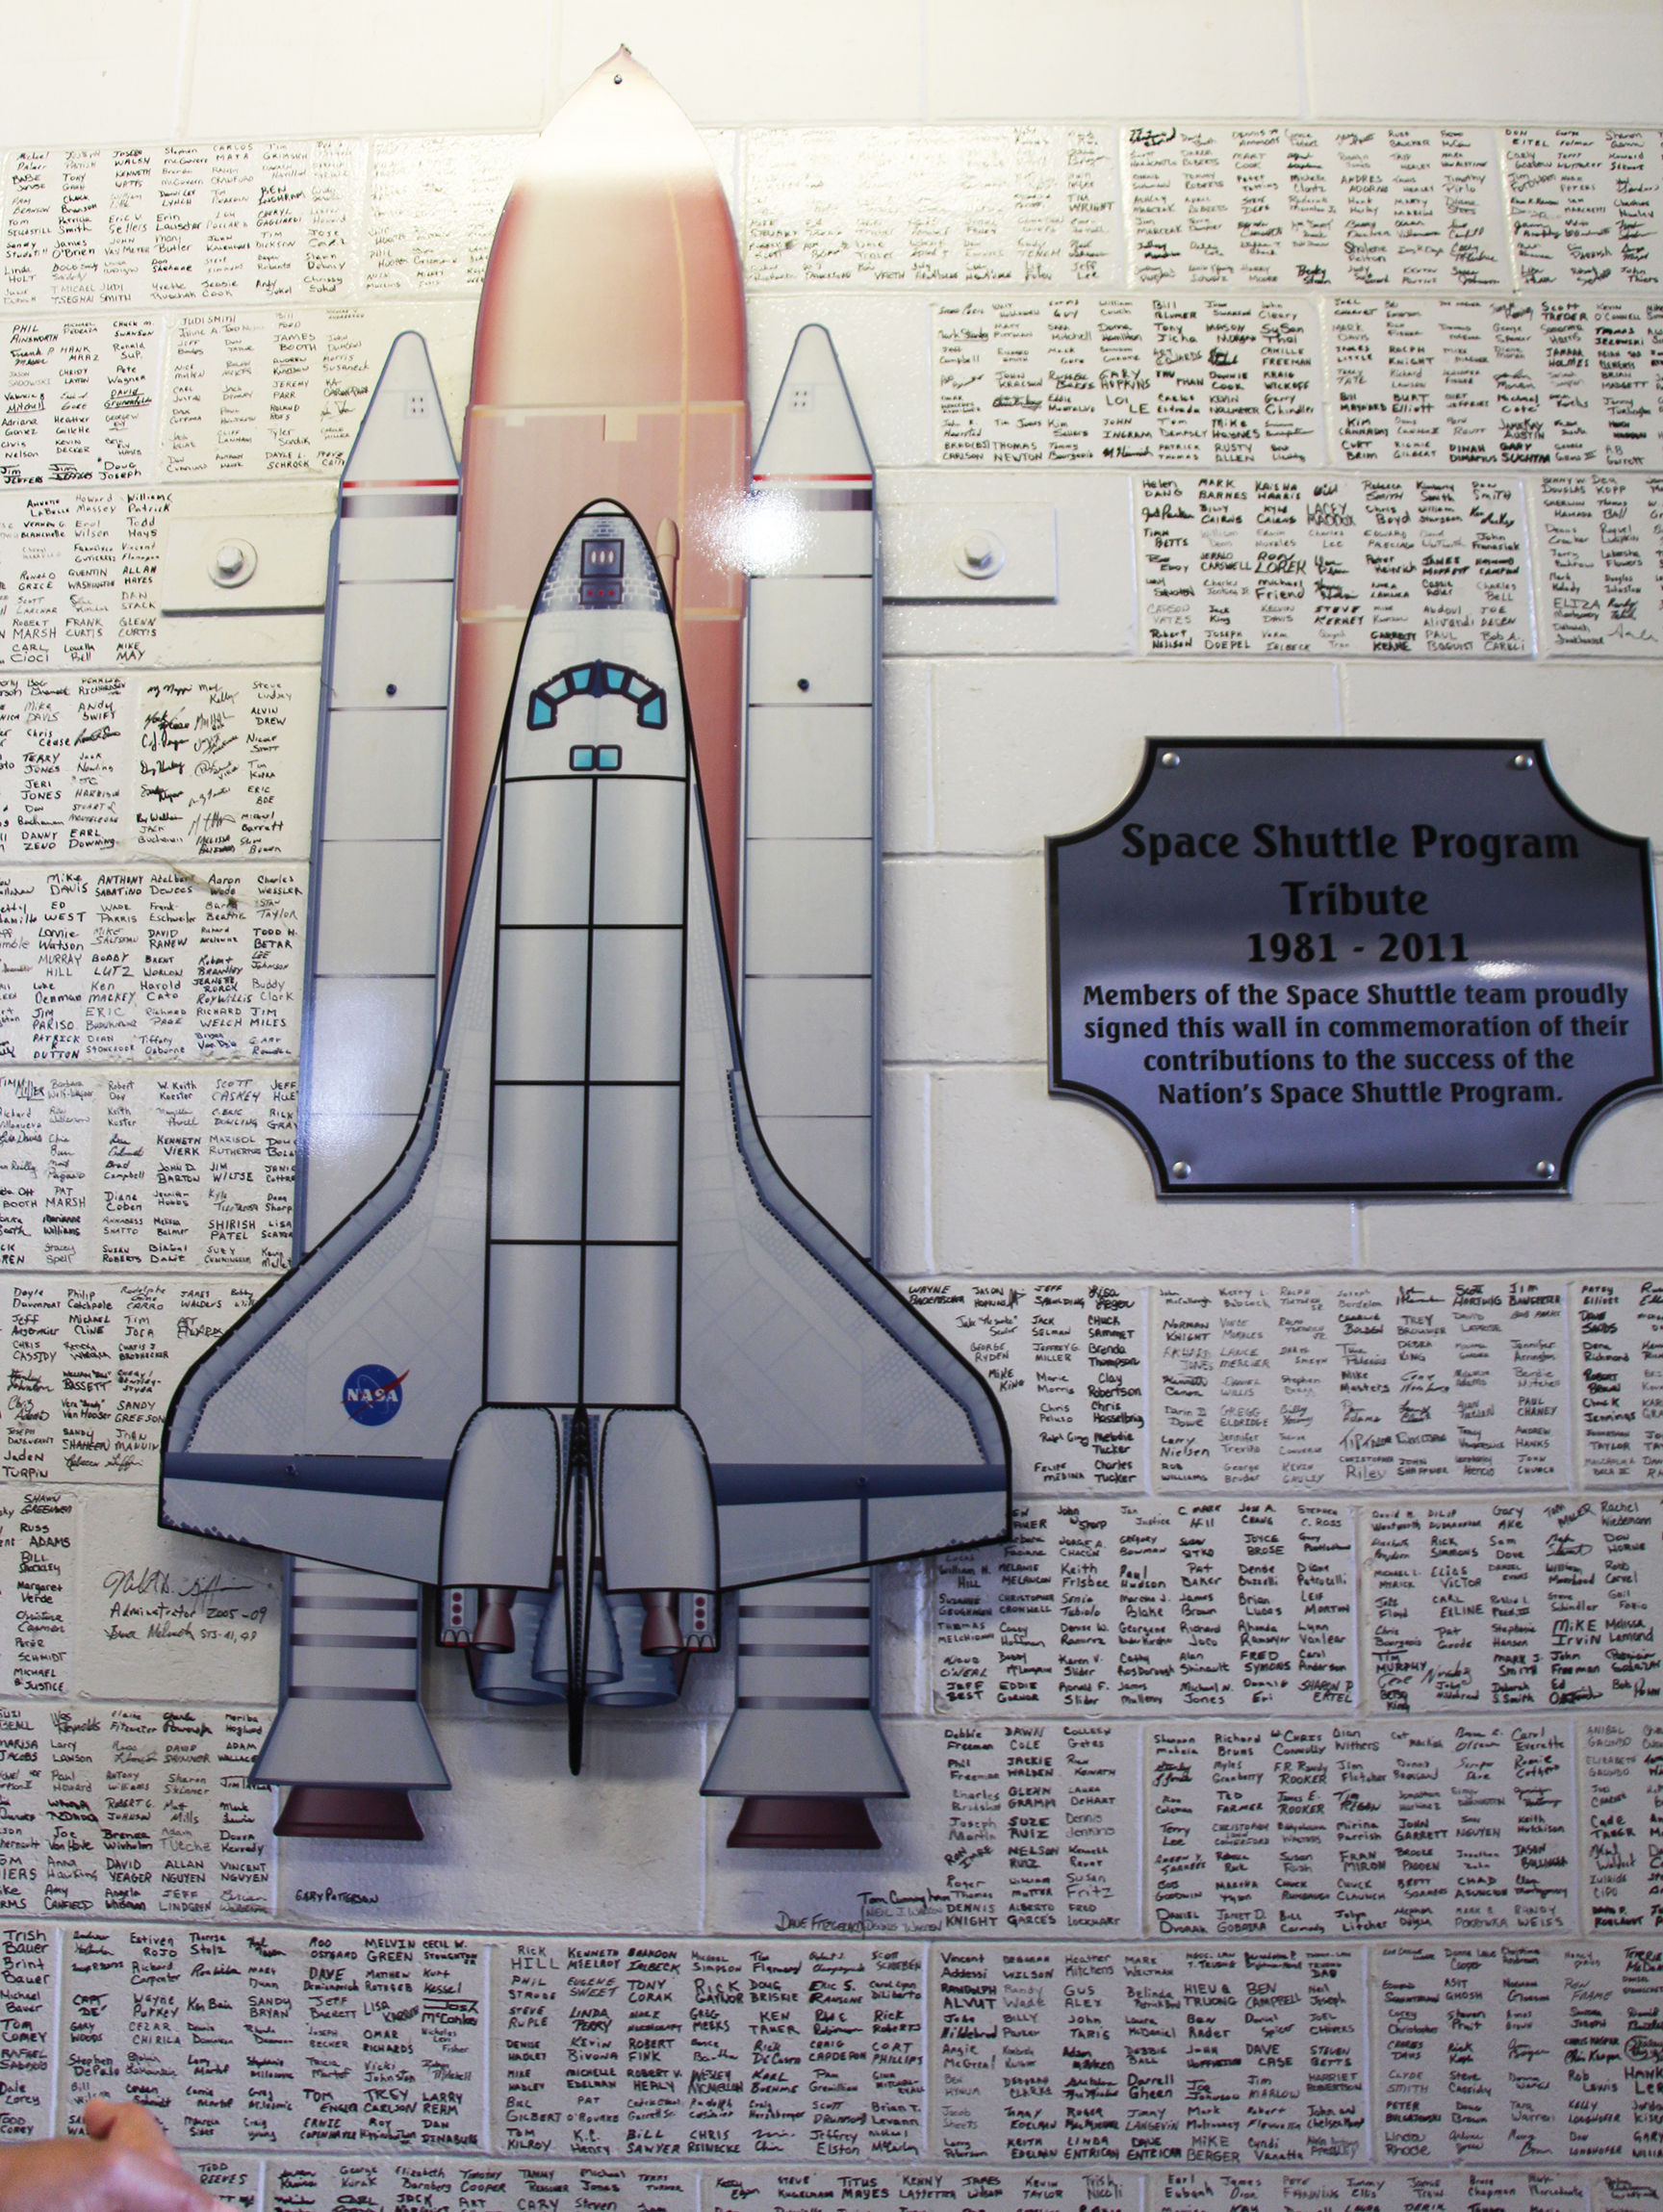 space_shuttle_program_tribute_1981_2011_vab_nasa_travelxena_2